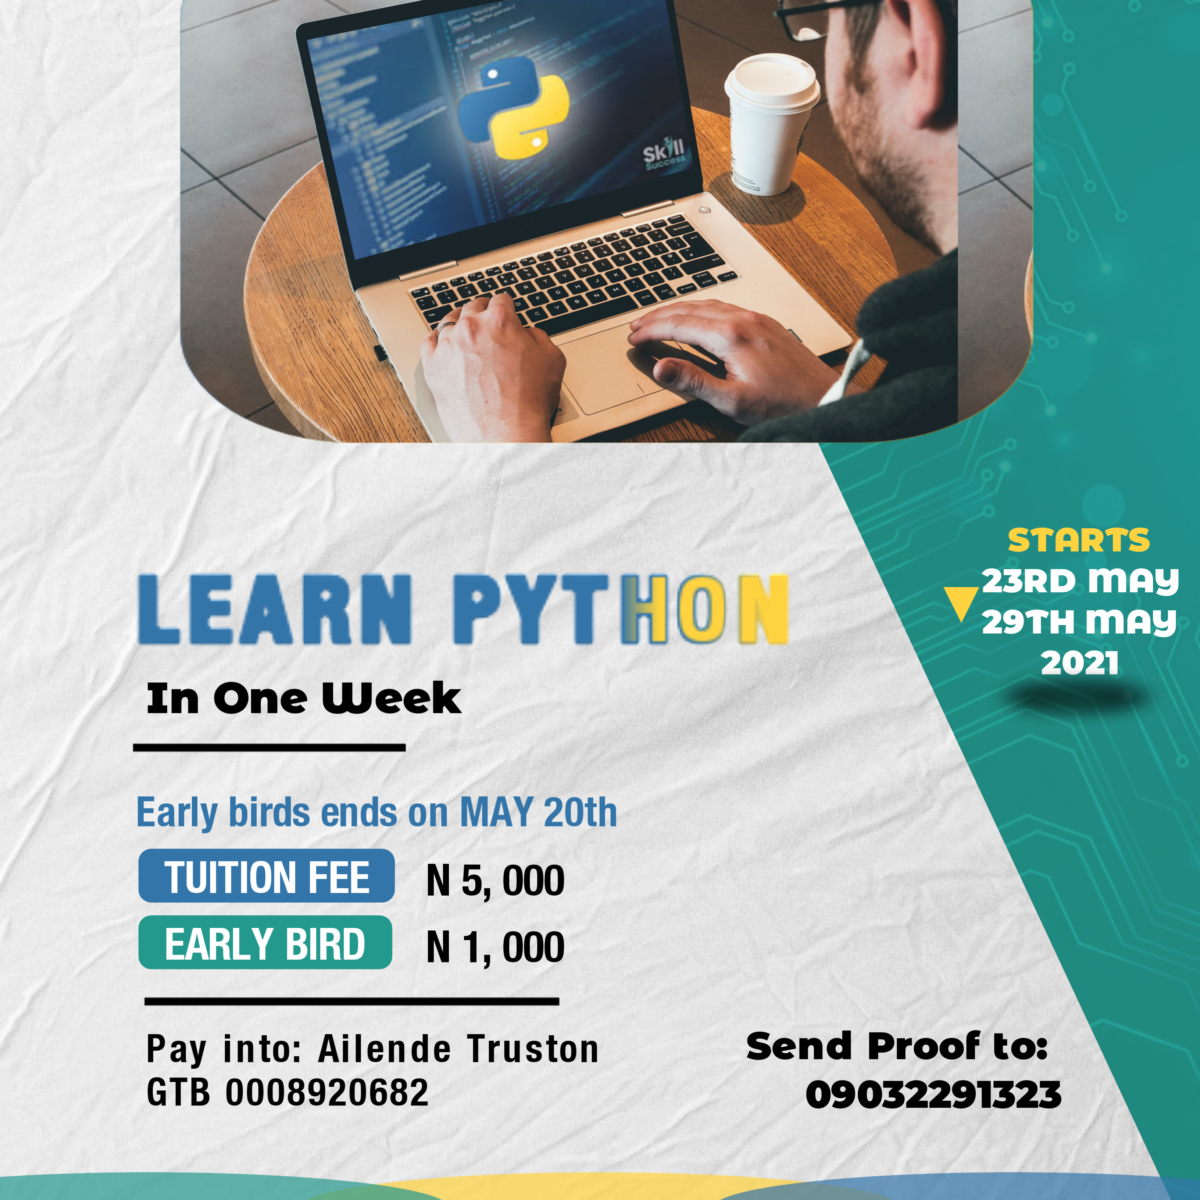 Learn Python in One Week